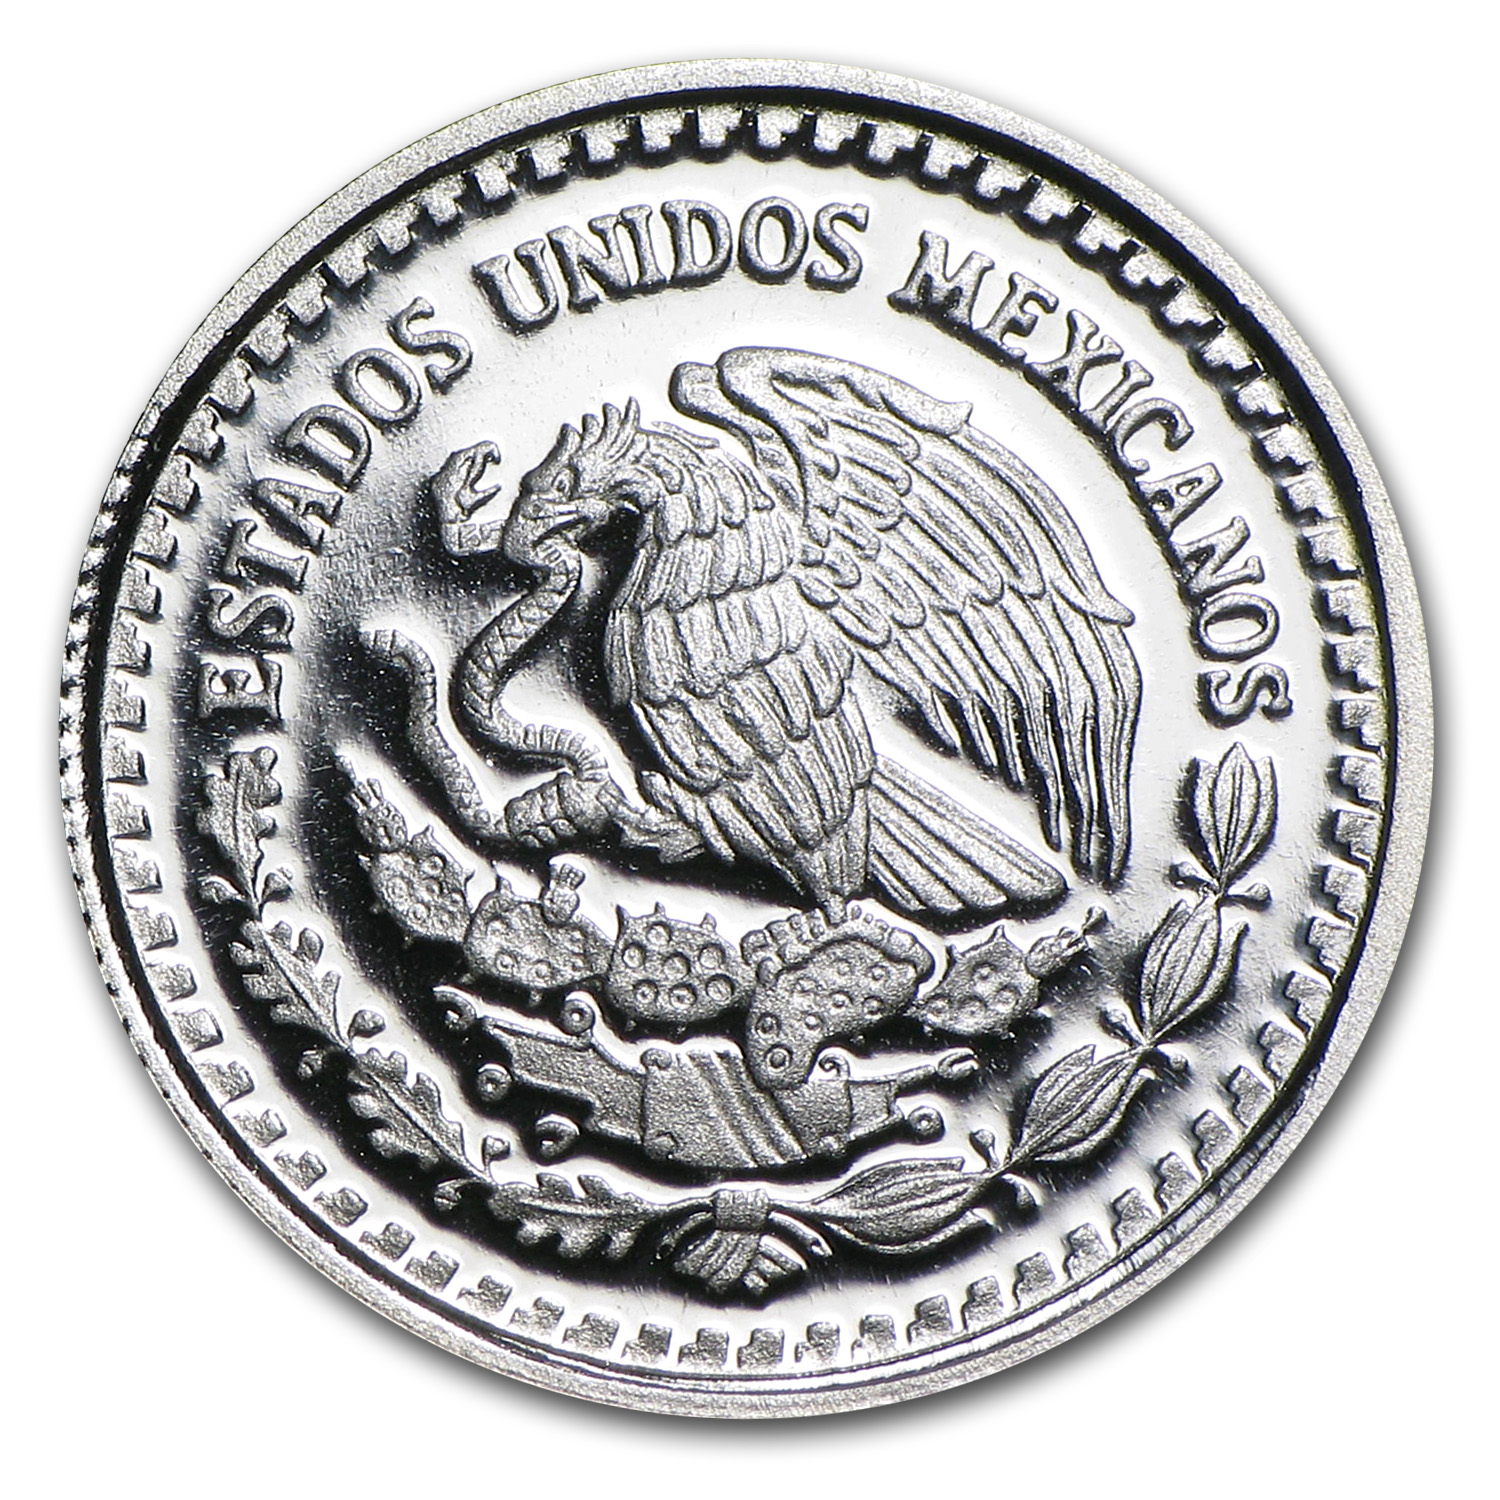 2010 1/20 oz Silver Mexican Libertad - Proof (In Capsule)